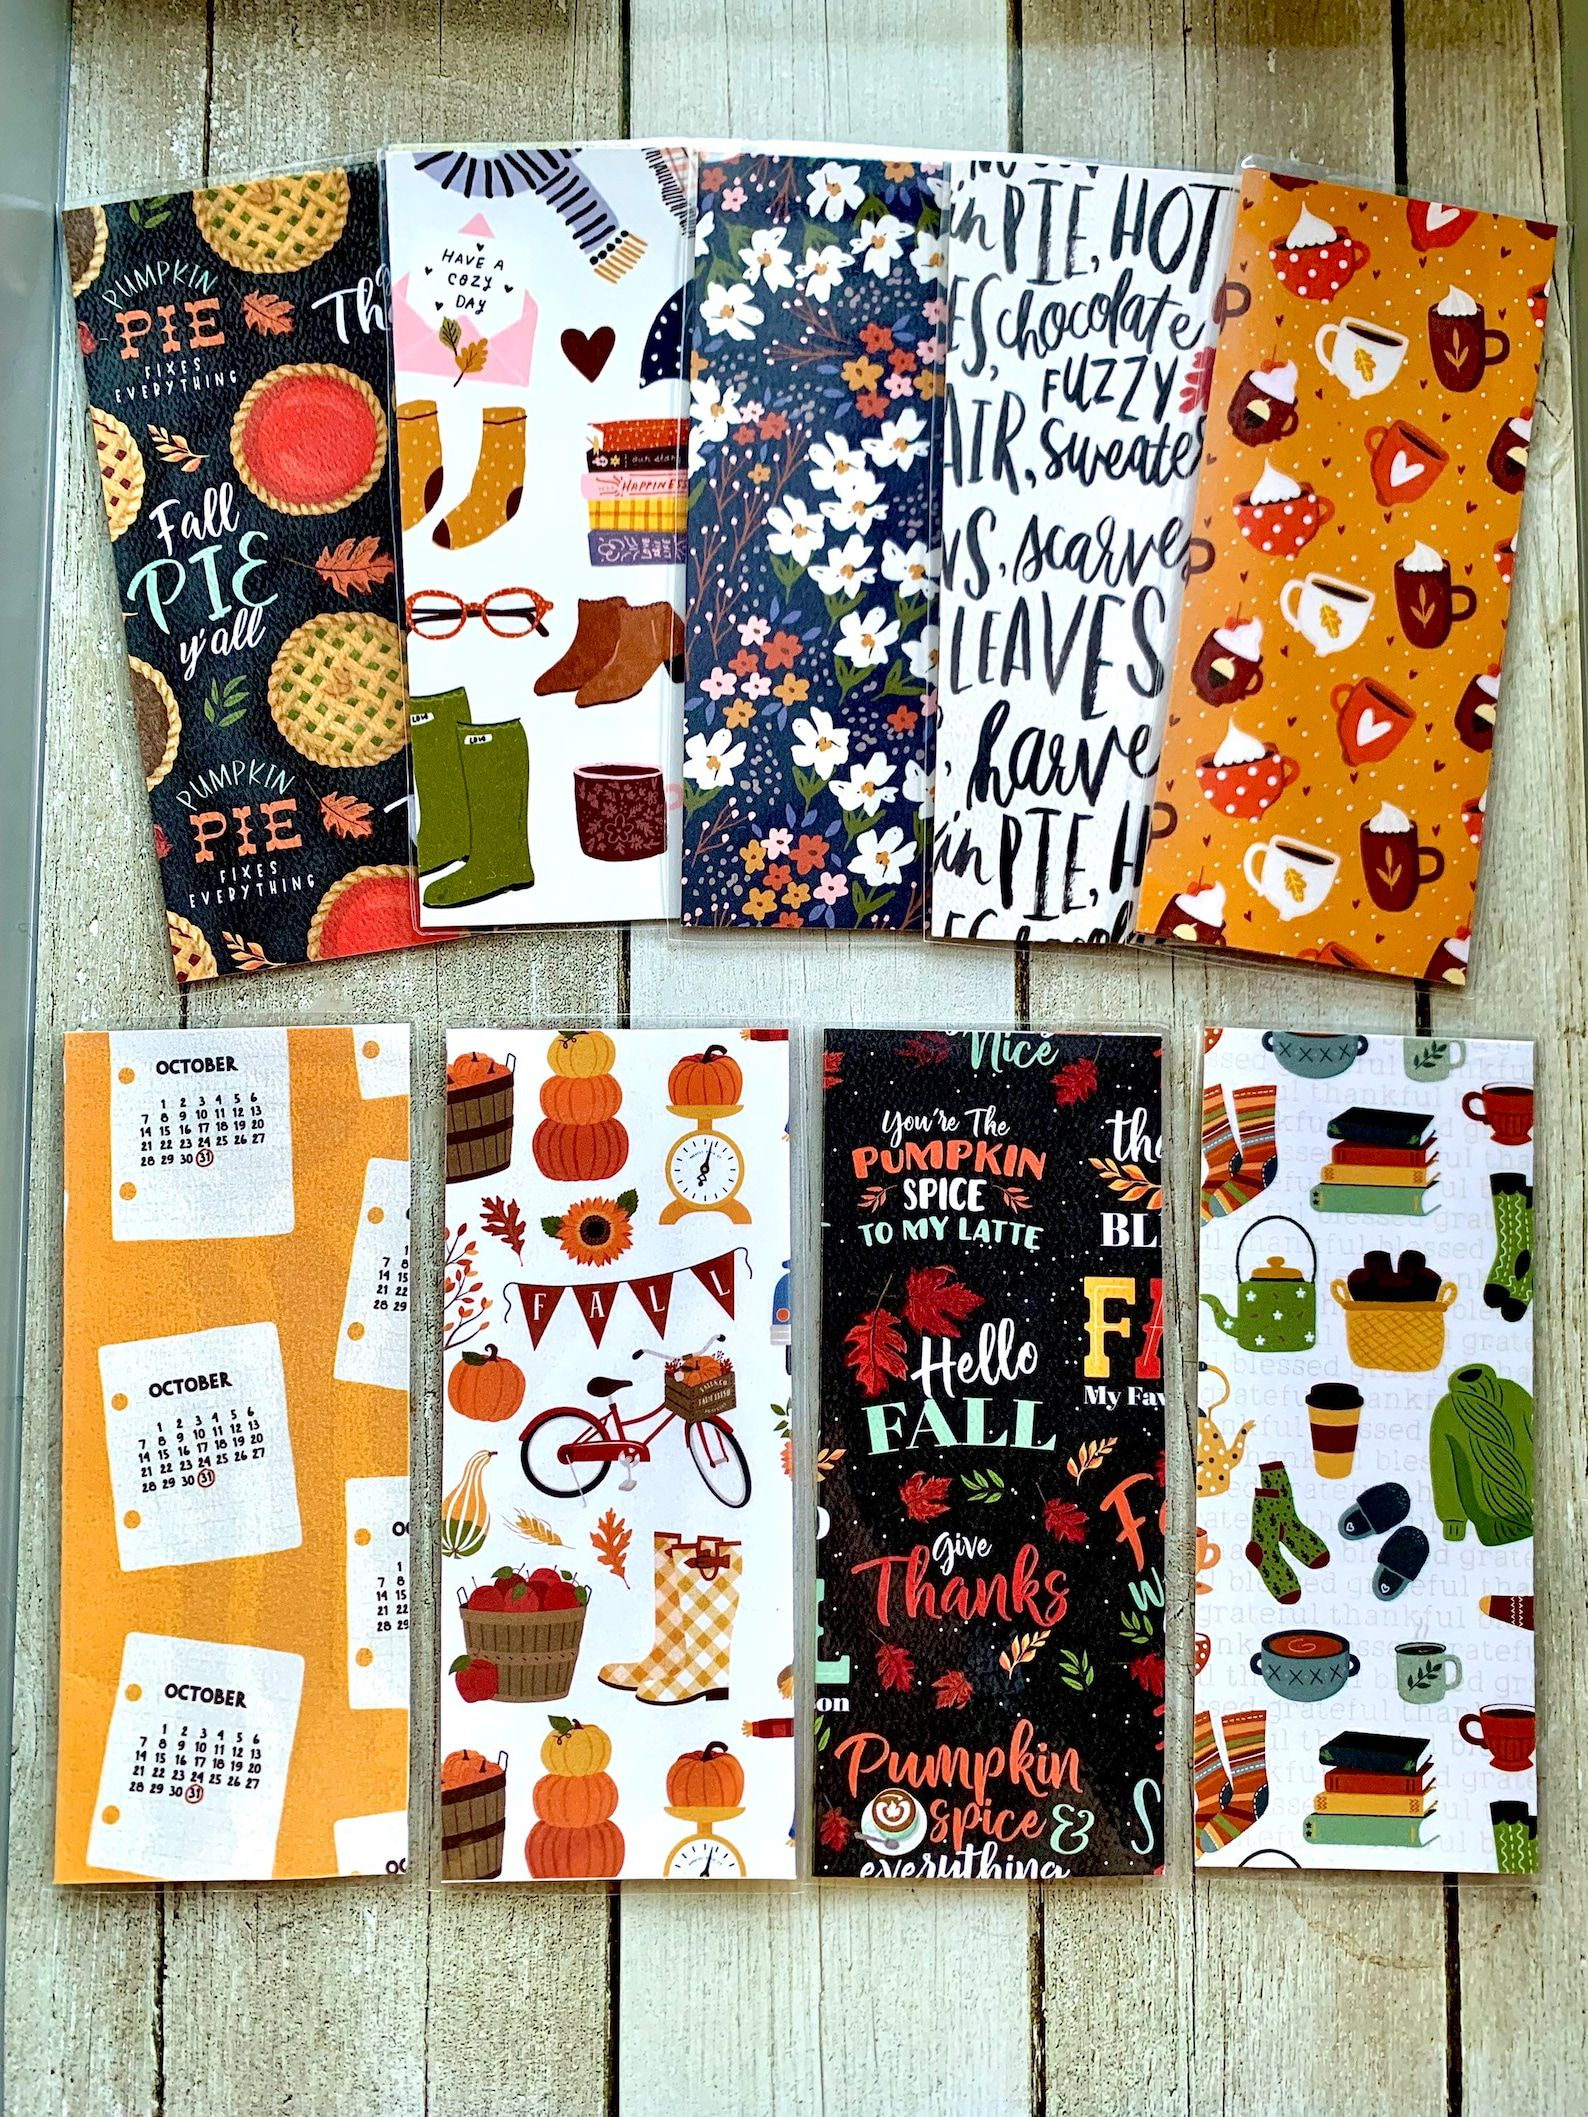 Eight bookmarks in various fall motifs of pumpkin spice lattes, green sweaters, fall florals, and pumpkin pies.